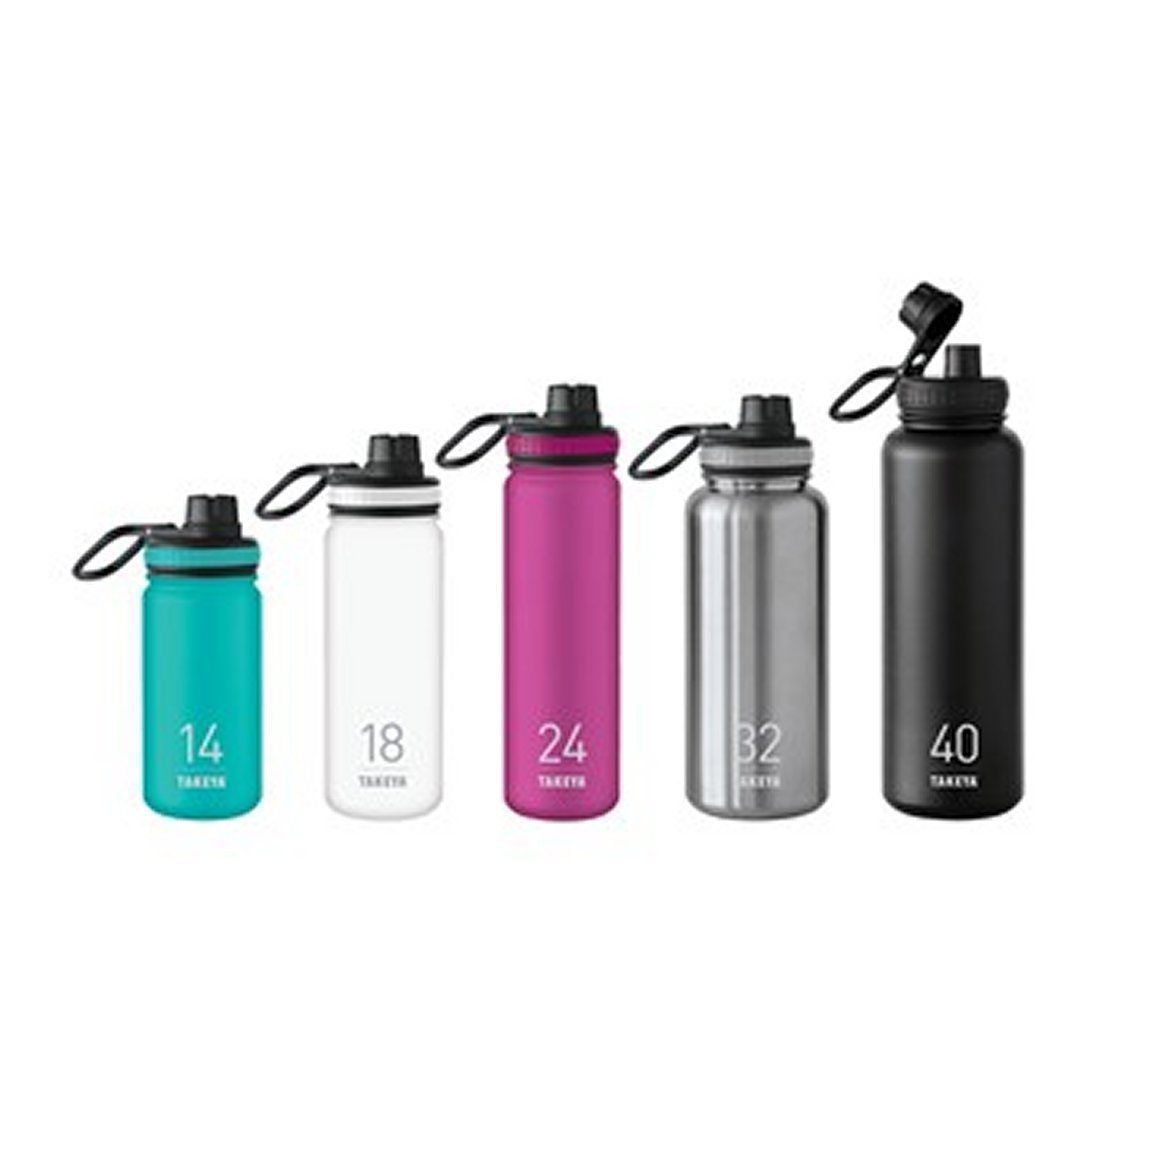 6a1308e7f9 Takeya Thermoflask Insulated Stainless Steel Bottle, Choose Your Size And  Color